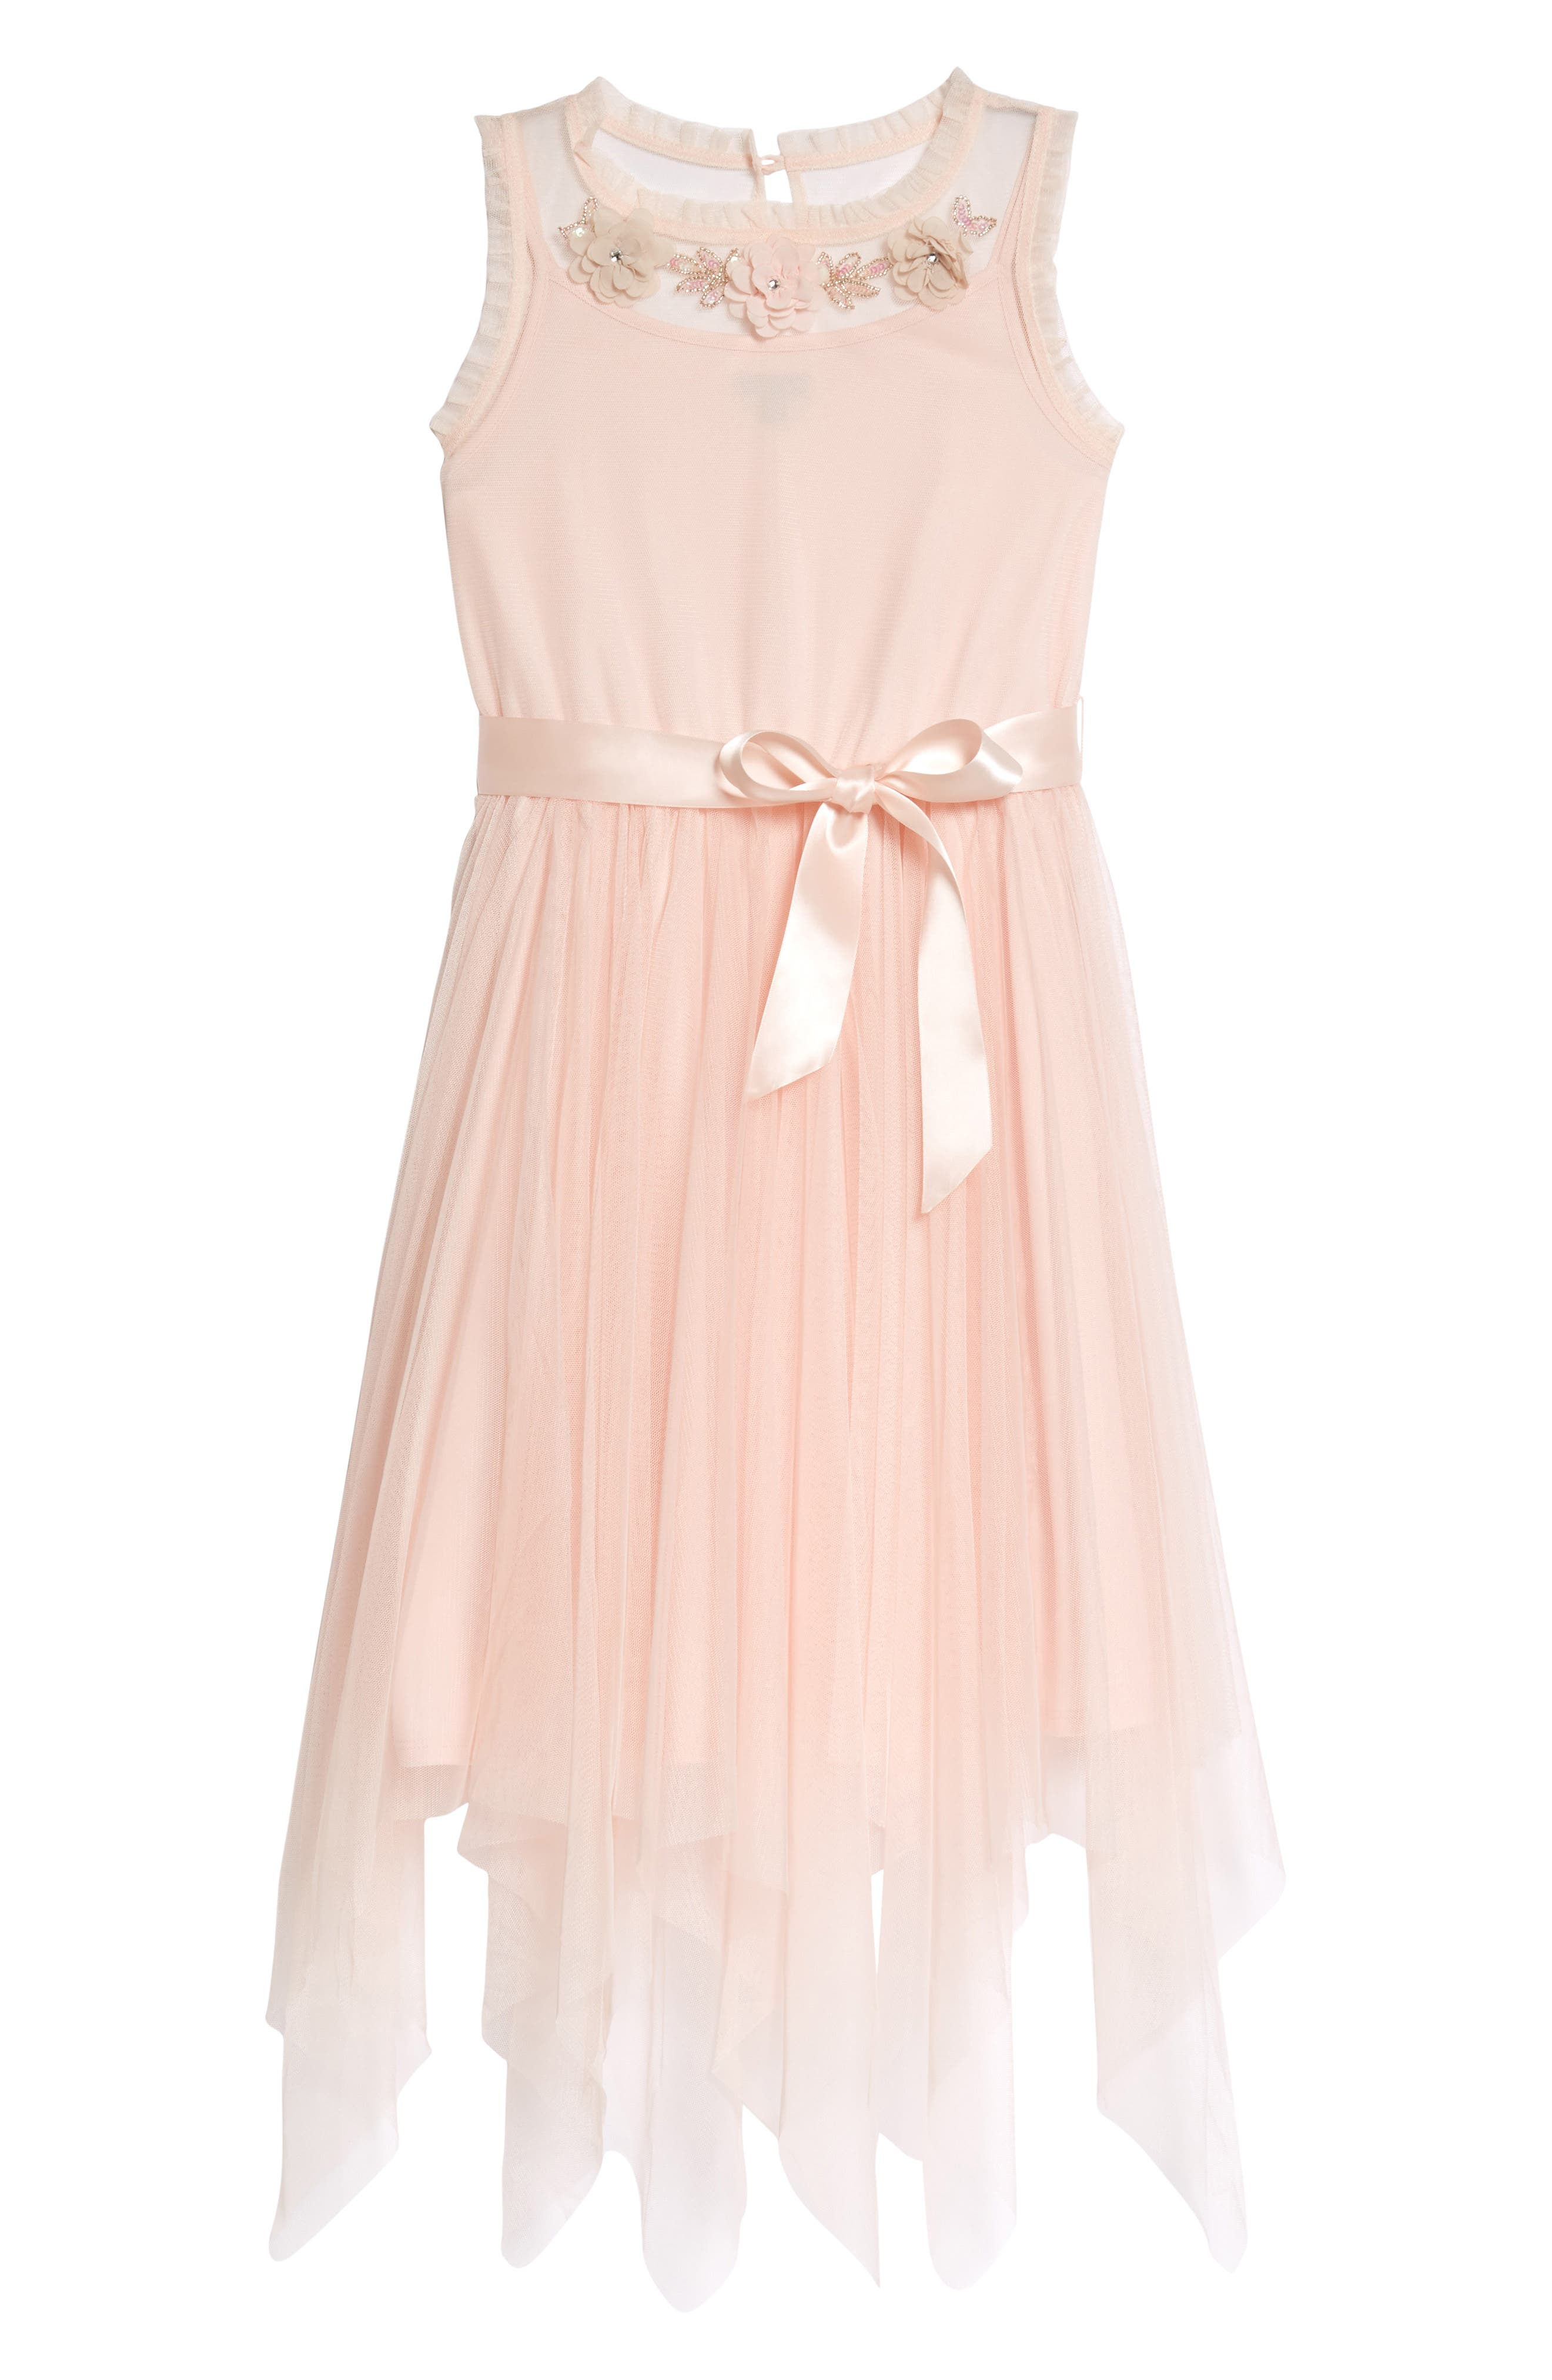 Embroidered Ballerina Dress,                             Main thumbnail 1, color,                             686